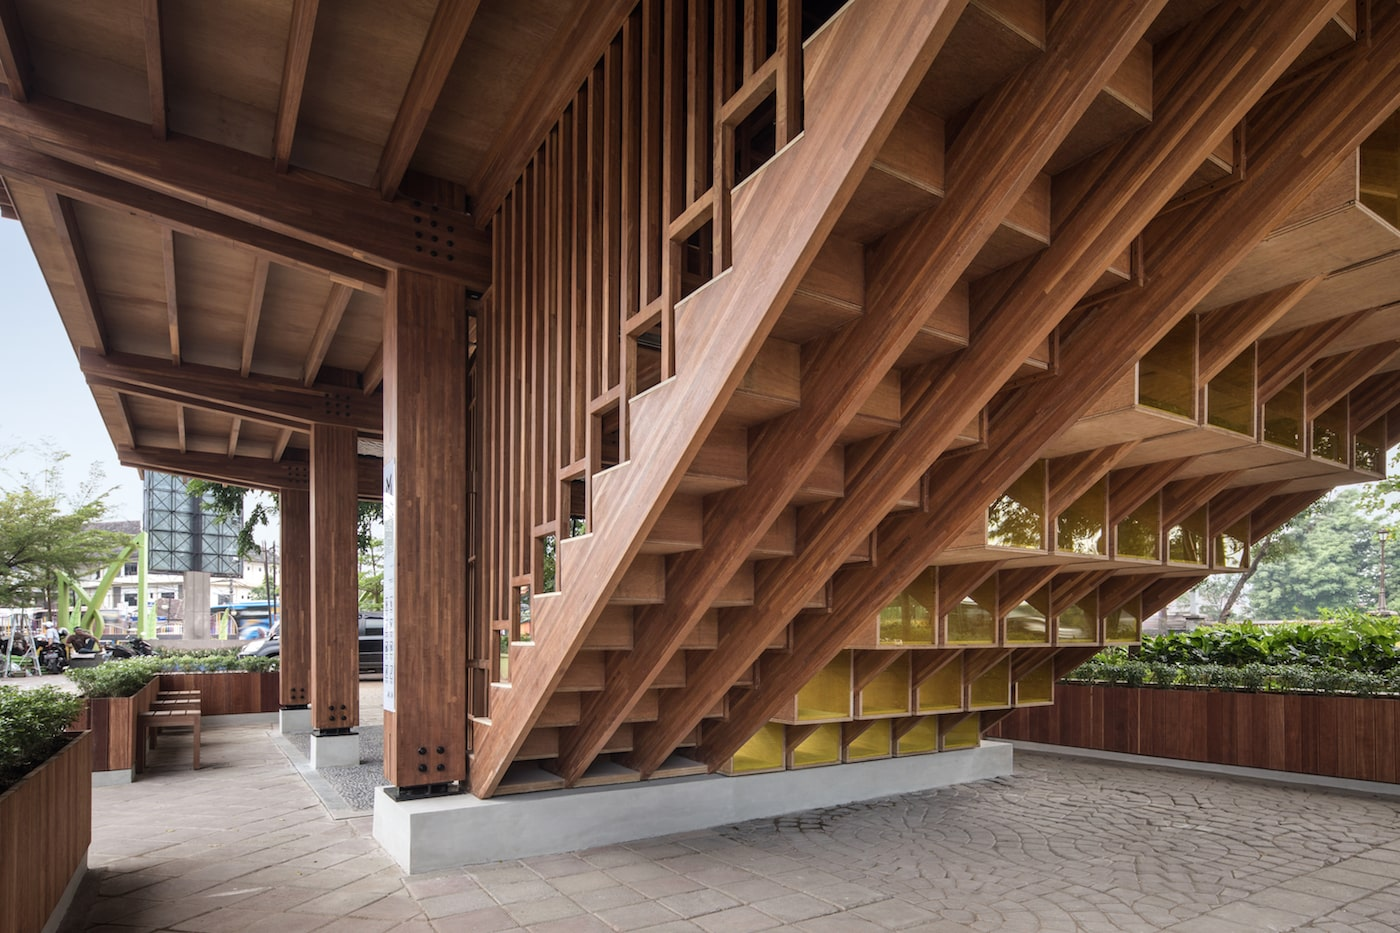 View of under side of timber staircase and timber seating